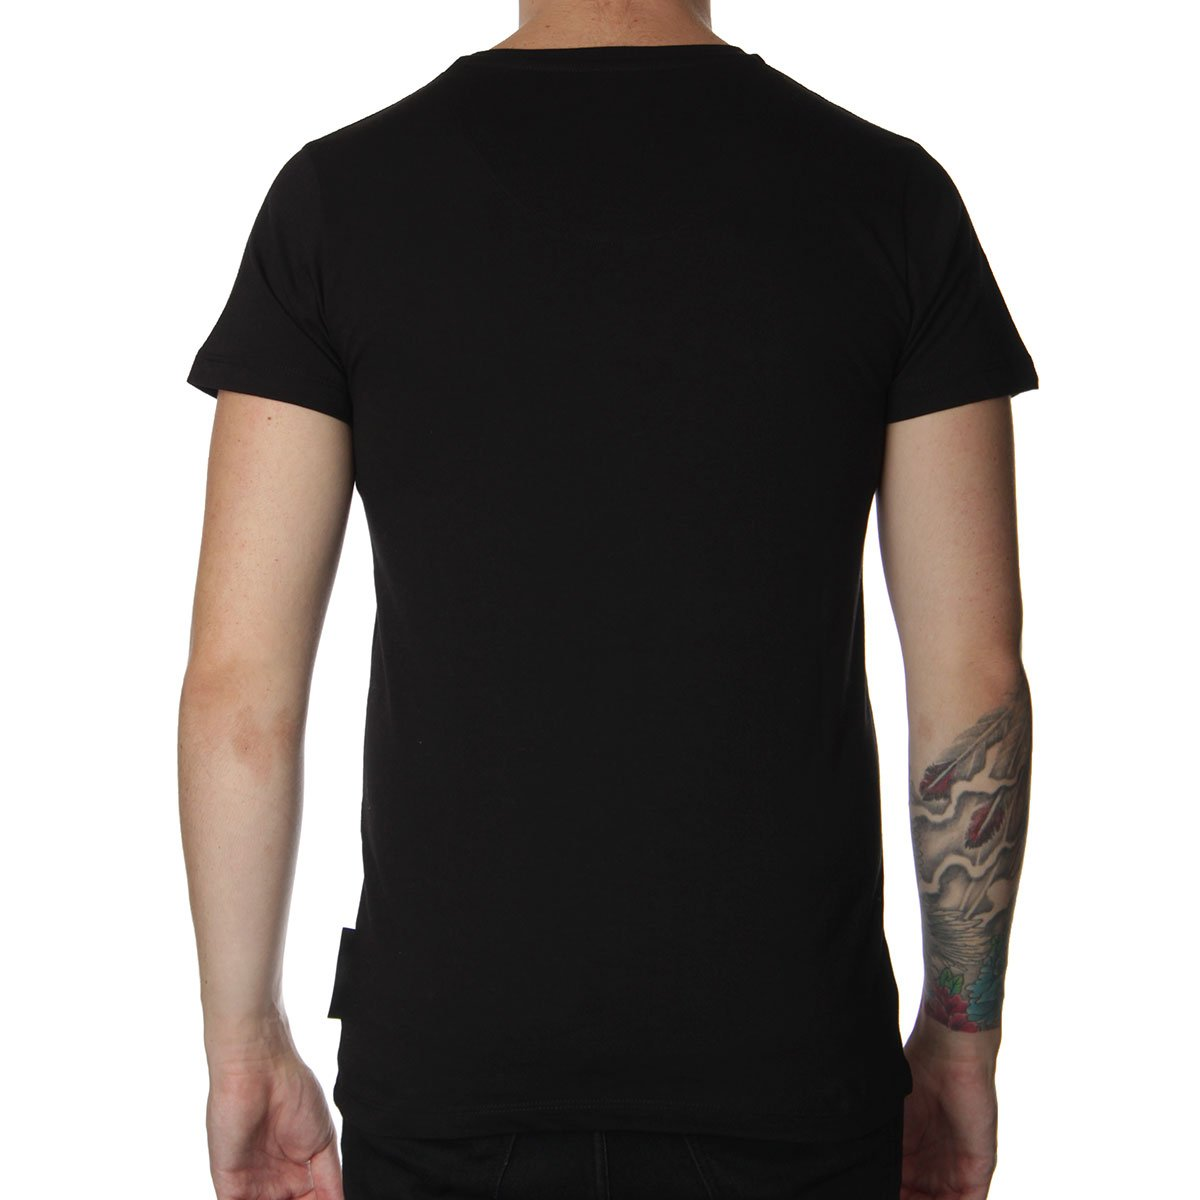 criminal damage view all t shirts view all criminal damage t shirts. Black Bedroom Furniture Sets. Home Design Ideas